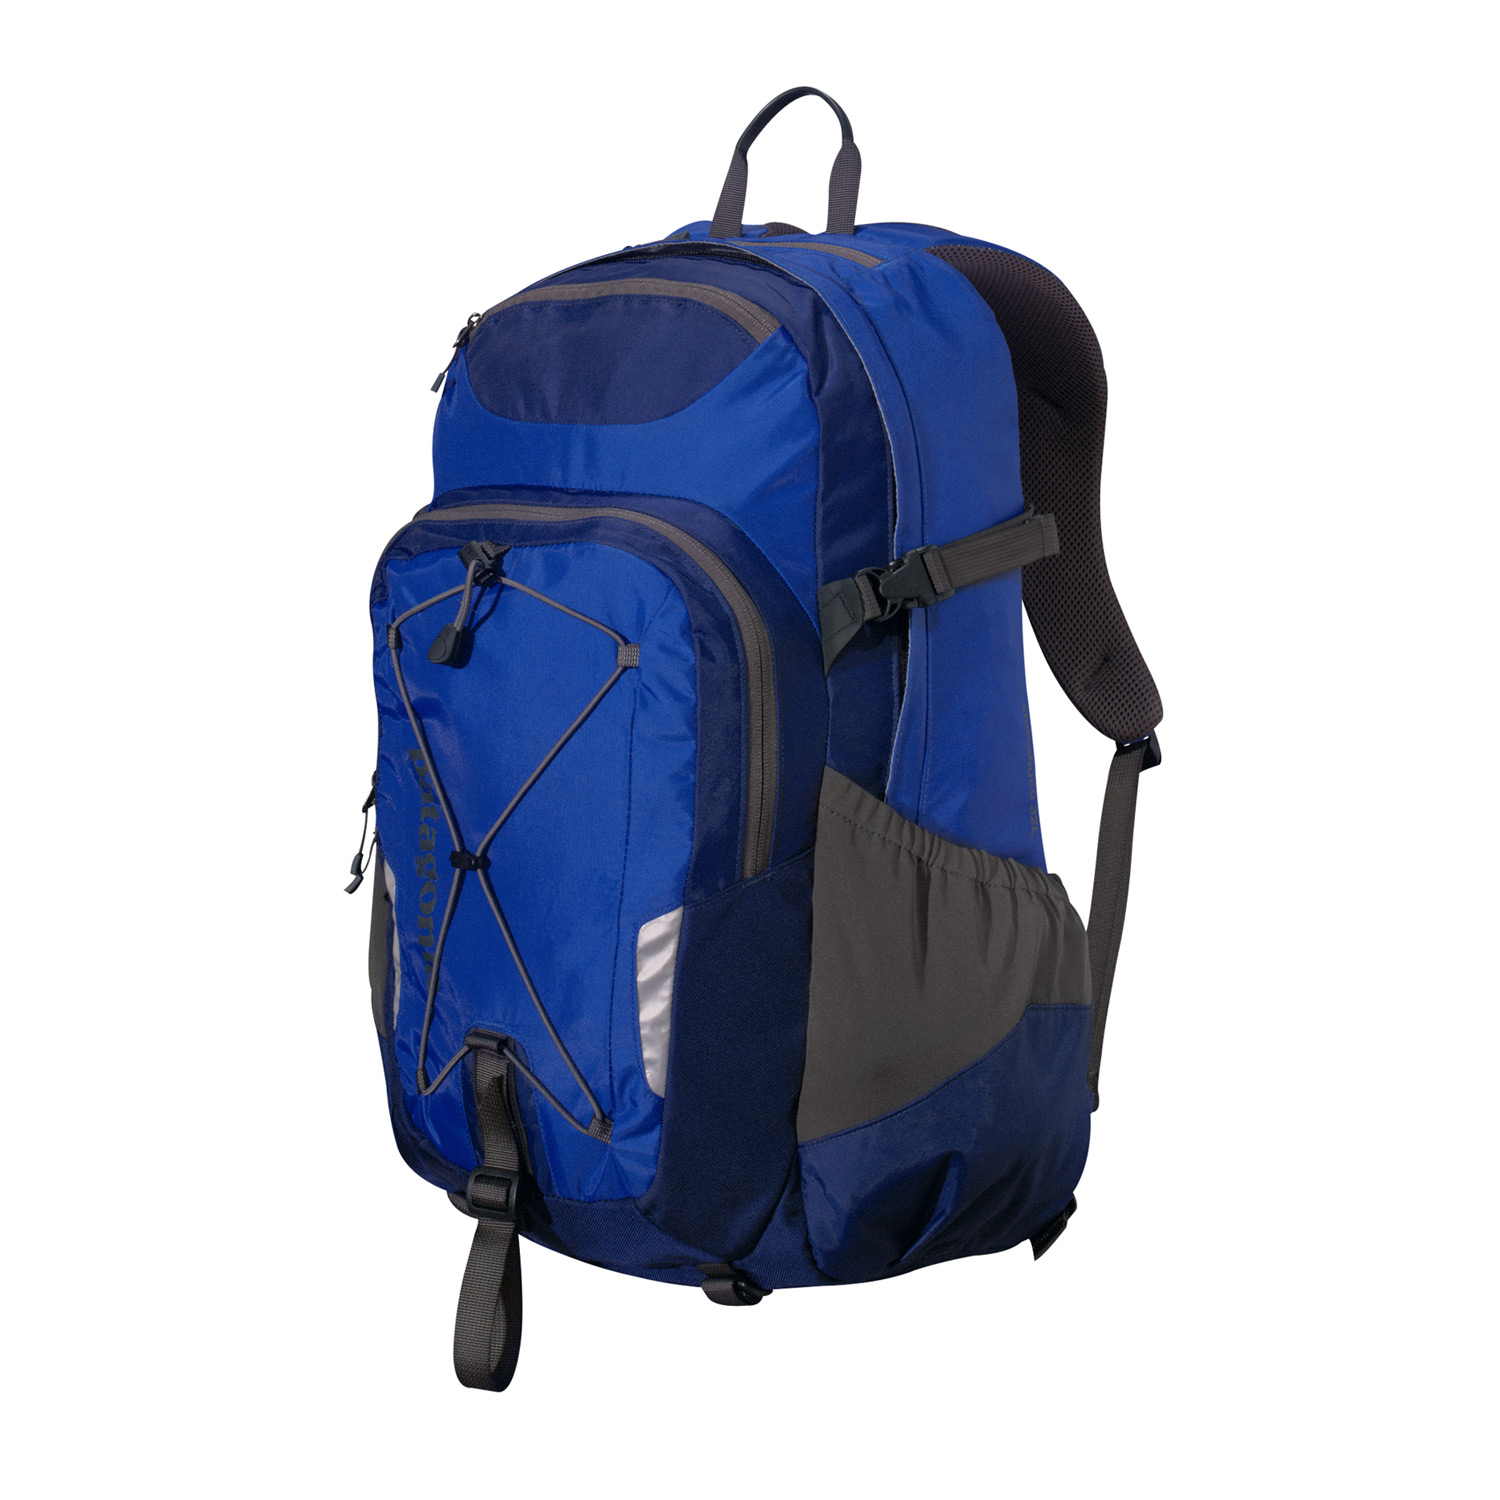 Entertainment A three-compartment daypack with a padded laptop sleeve, mounted shock cord for bulky items and plenty of carrying optionsKey Features of the Patagonia Chacabuco 32L Backpack: Generous main compartment with dump pockets for quick organization on the go; secondary compartment with internal organization has plenty of options for electronics and daily supplies, including a lanyard to secure keys; padded laptop sleeve is raised off the ground to protect from impact; sleeve secures with a buckle closure and doubles as an insulated hydration reservoir complete with tube port Exterior zippered pocket for quick access to essentials; microfleece-lined pocket for sunglasses and electronics; stretch-woven pockets accommodate a wide range of water bottle shapes and sizes; shock cord secures bulky items; reflective piping for visibility at night Airflow-mesh shoulder straps and back panel; adjustable sternum strap with emergency whistle Top-mounted, reinforced haul handle 32 L / 1953 cu in (1 lb 13.6 oz) 839 g Fabric: Body: 420-denier 100% nylon oxford plain weave. Base: 840-denier 100% ballistics nylon. Lining: 200-denier 100% polyester. Stretch-woven pockets: 92% nylon/8% spandex. All treated with a DWR (durable water repellent) finish - $61.95